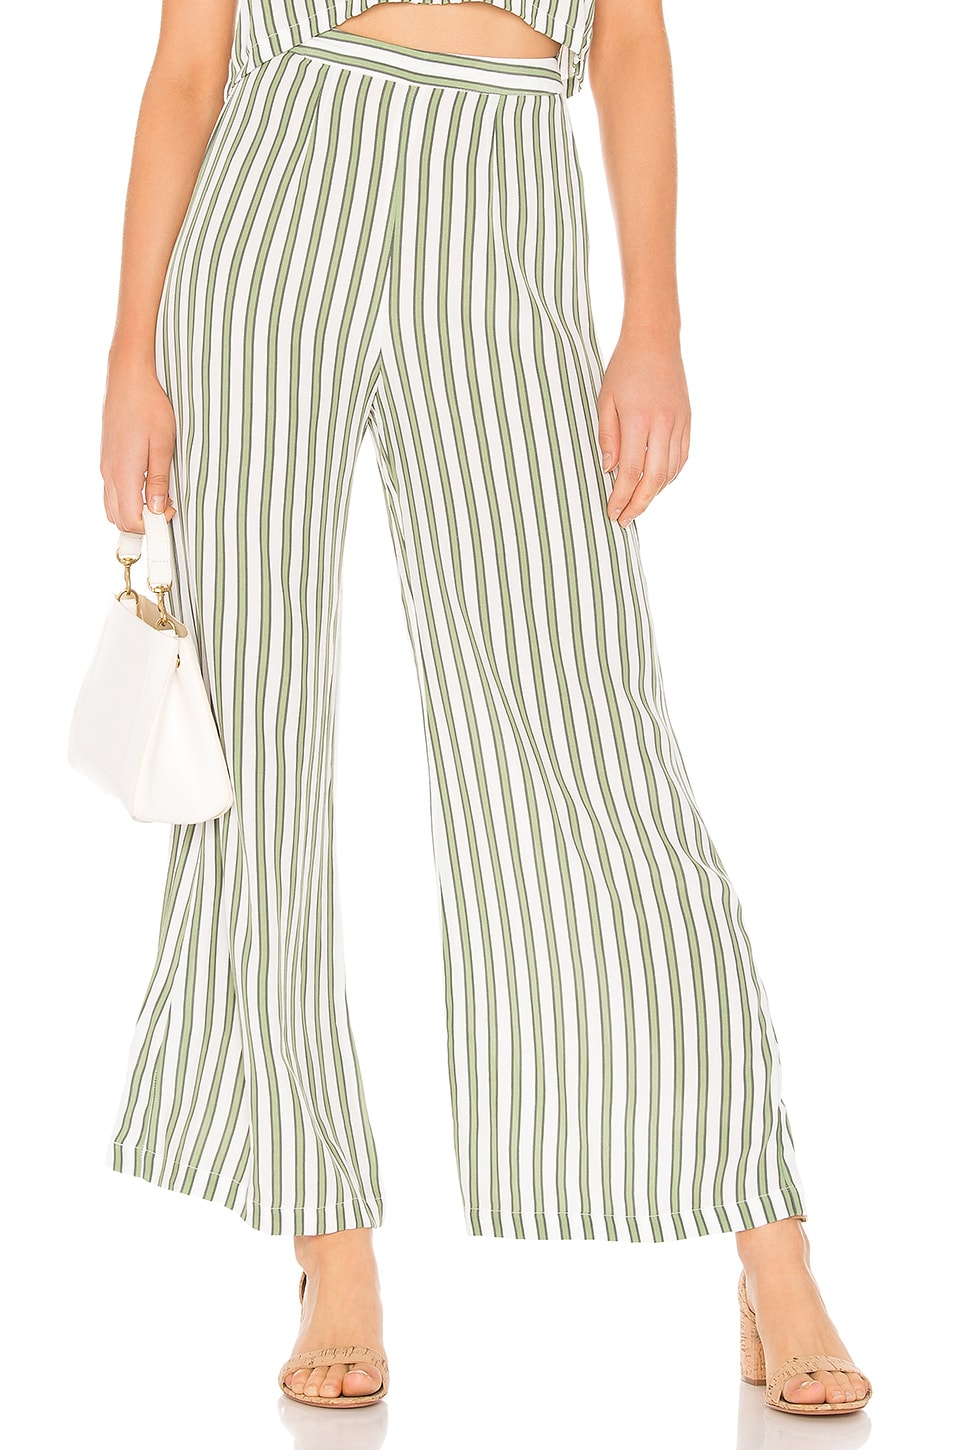 FAITHFULL THE BRAND Gabrielle Pants in Almeria Stripe